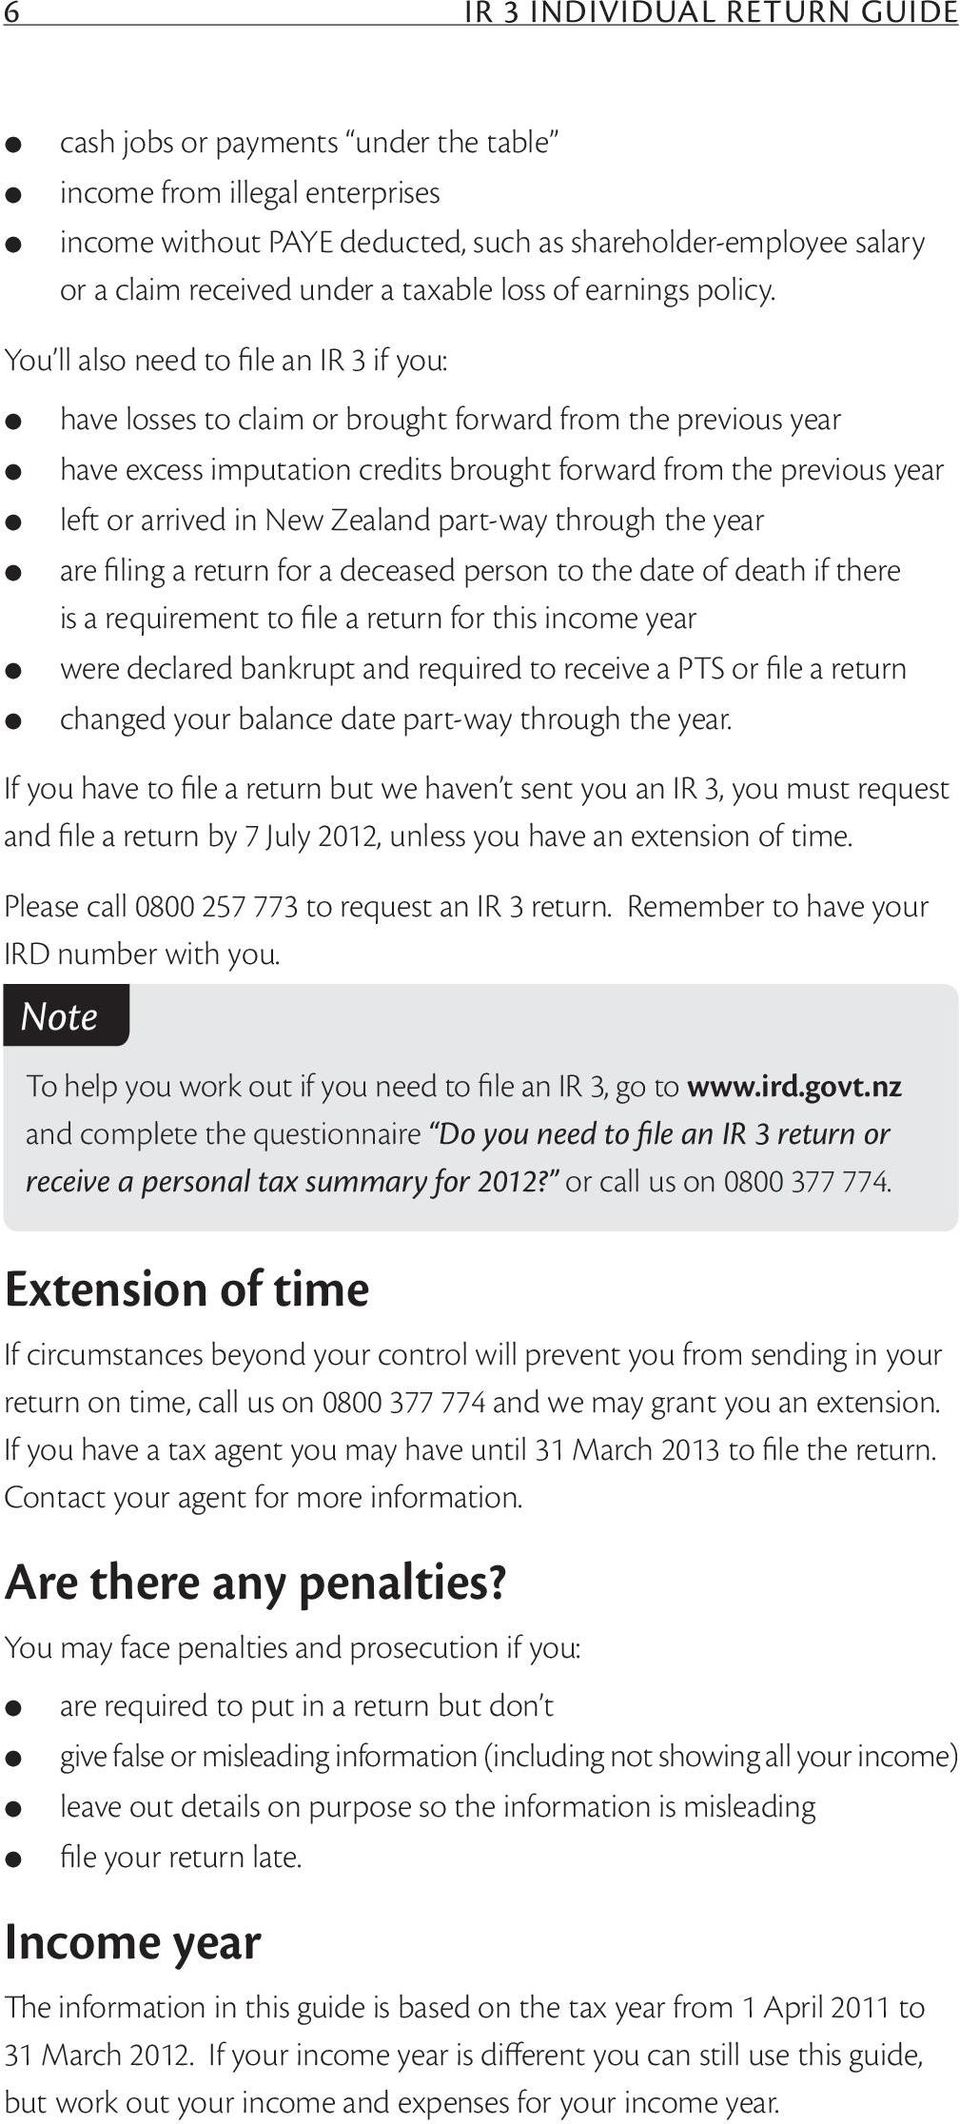 You ll also need to file an IR 3 if you: have losses to claim or brought forward from the previous year have excess imputation credits brought forward from the previous year left or arrived in New